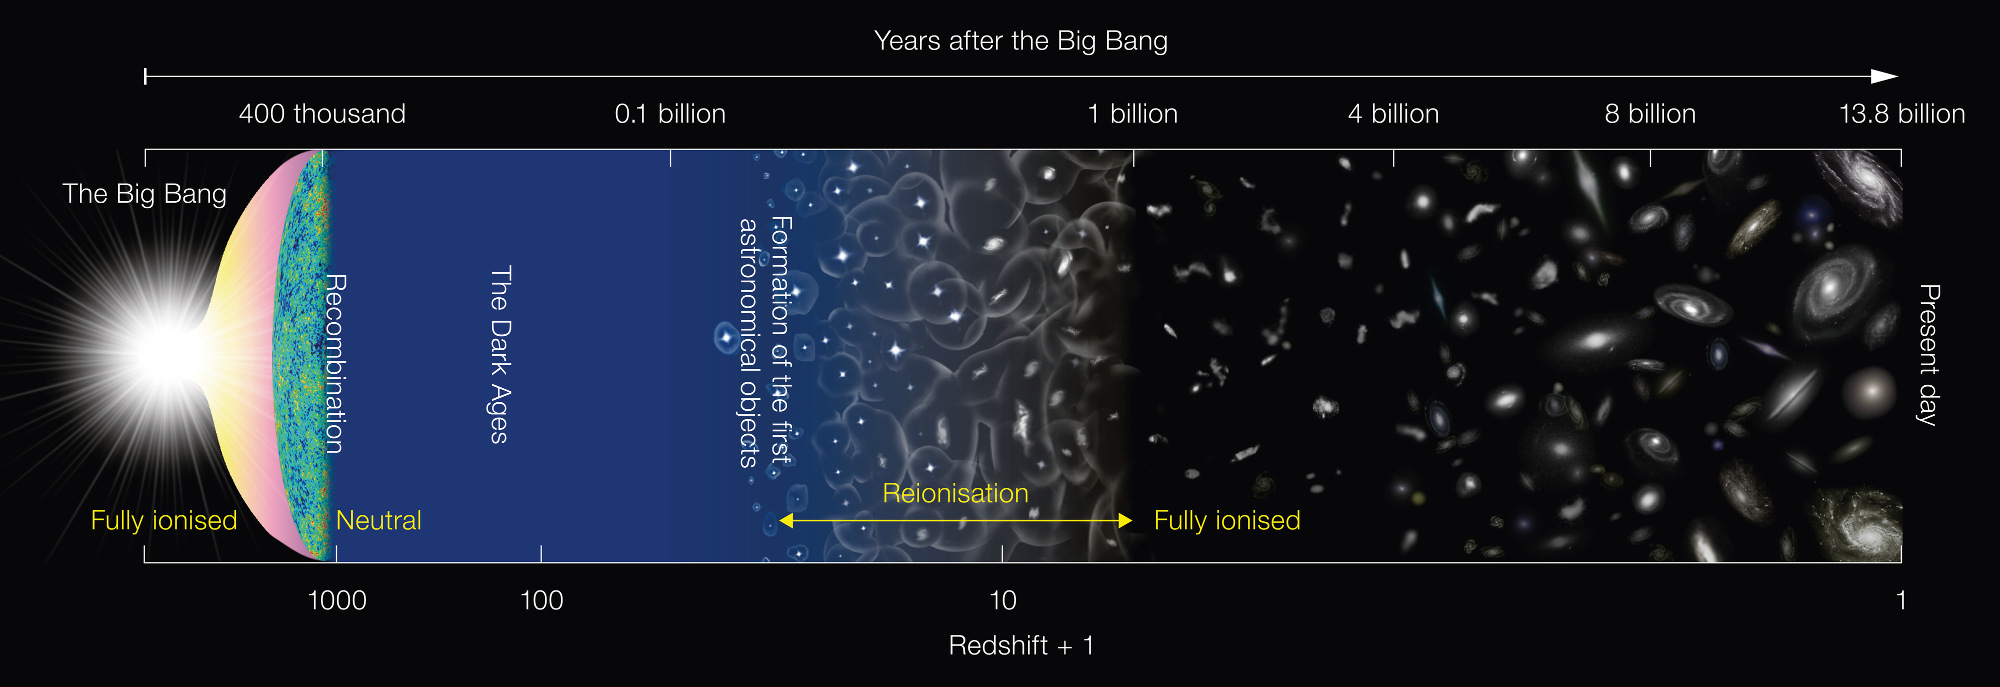 This diagram (not to scale) depicts the major milestones in the evolution of the universe since the Big Bang, about 13.8billion years ago. The universe was in a neutral state at 400 thousand years after the Big Bang and remained that way until light from the first generation of stars started to ionise the hydrogen. After several hundred million years, the gas in the universe was completely ionised. Click the graphic for a larger version. Image credit: NAOJ.